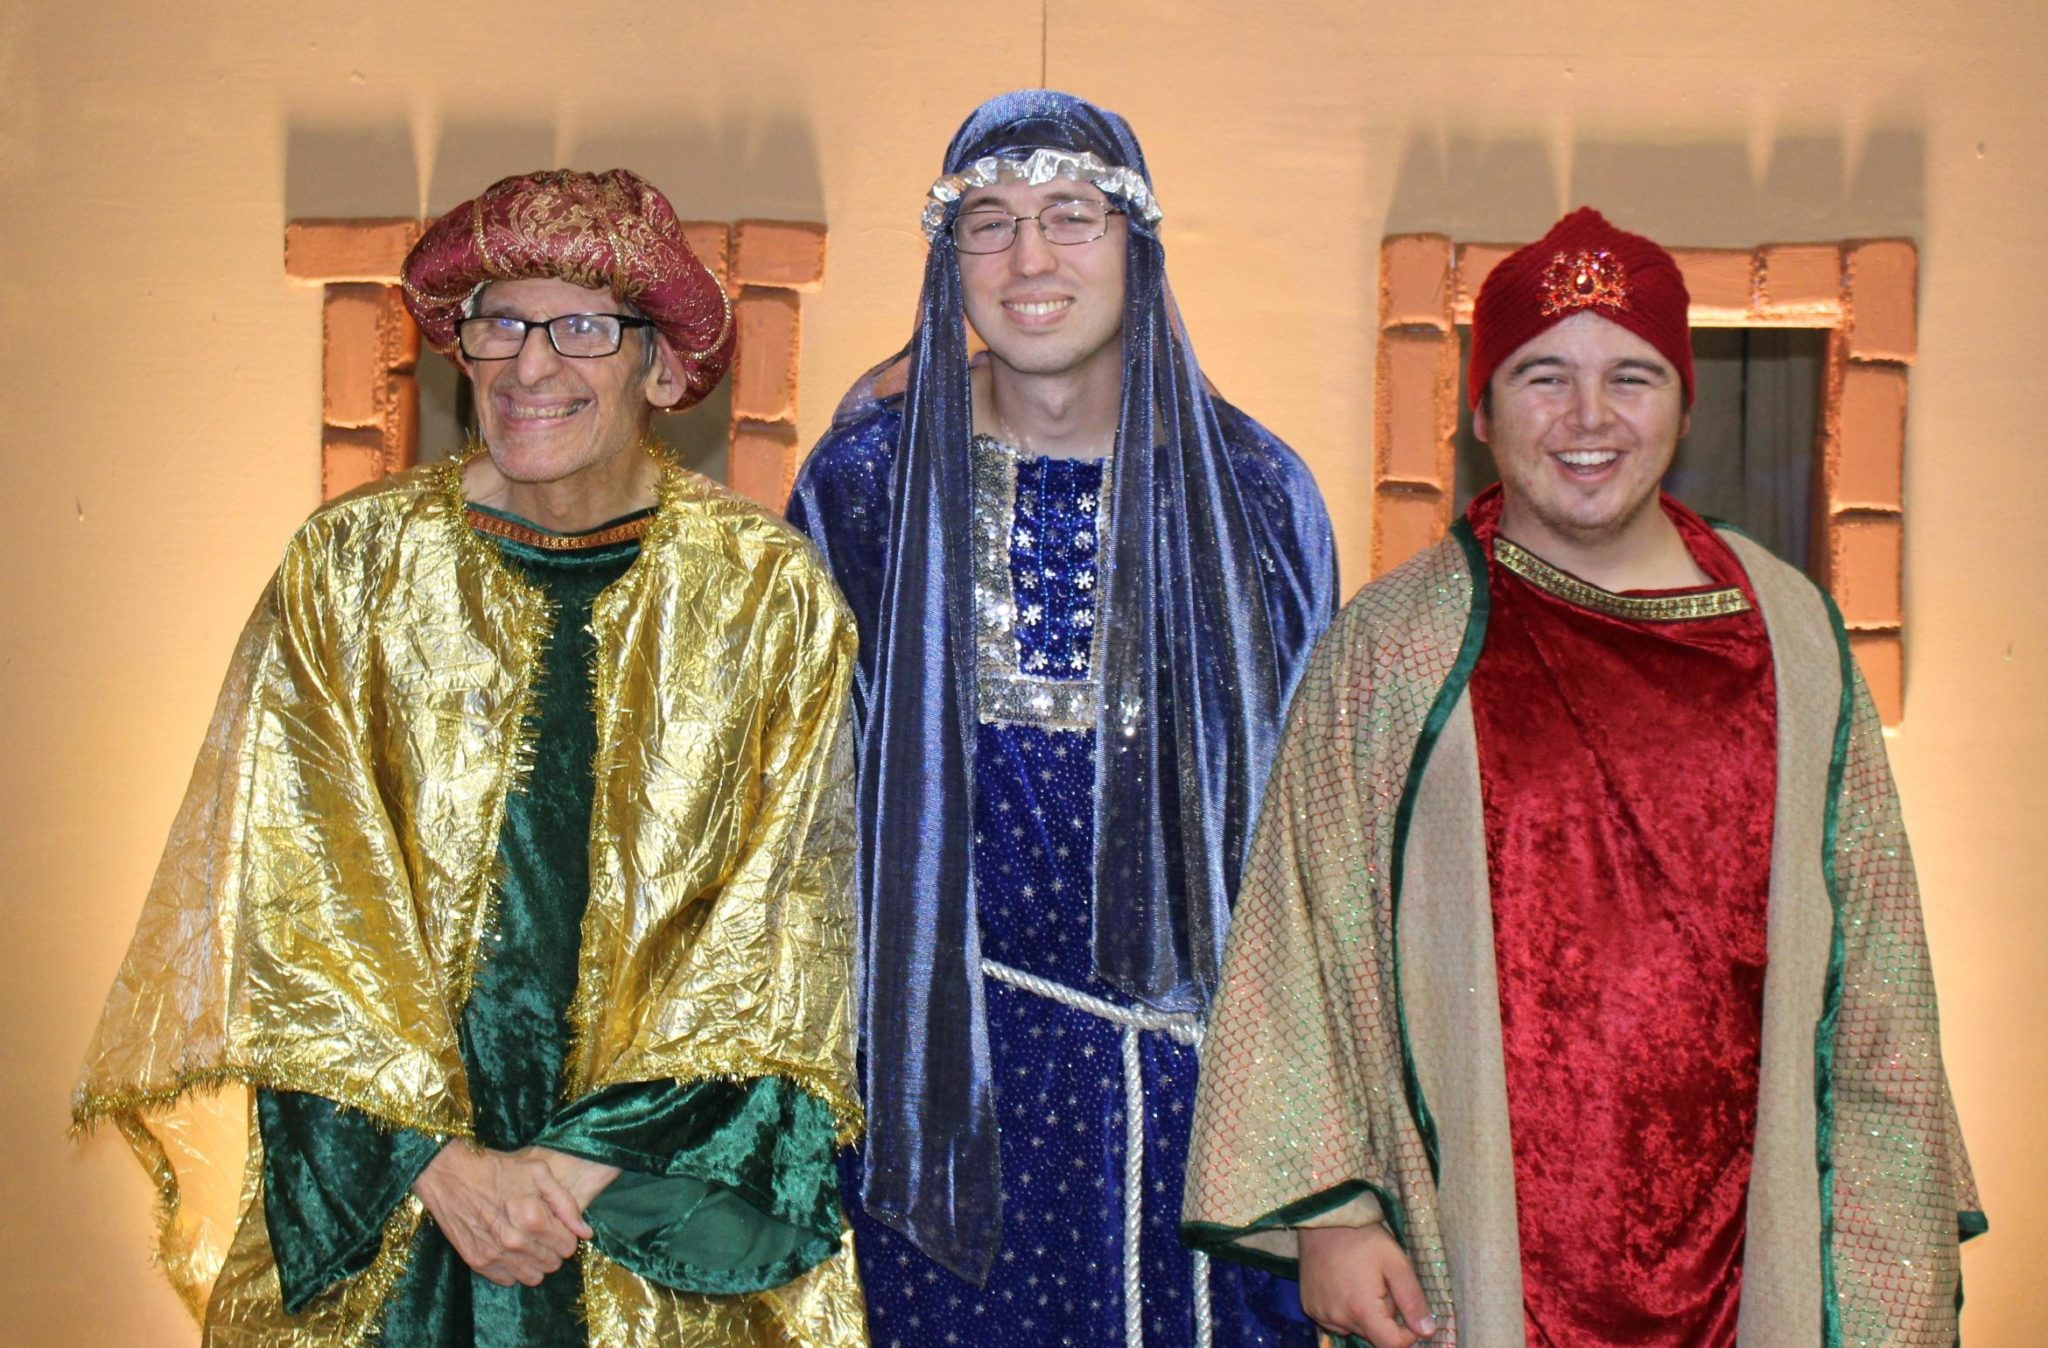 The three wise men in their outfits and hats